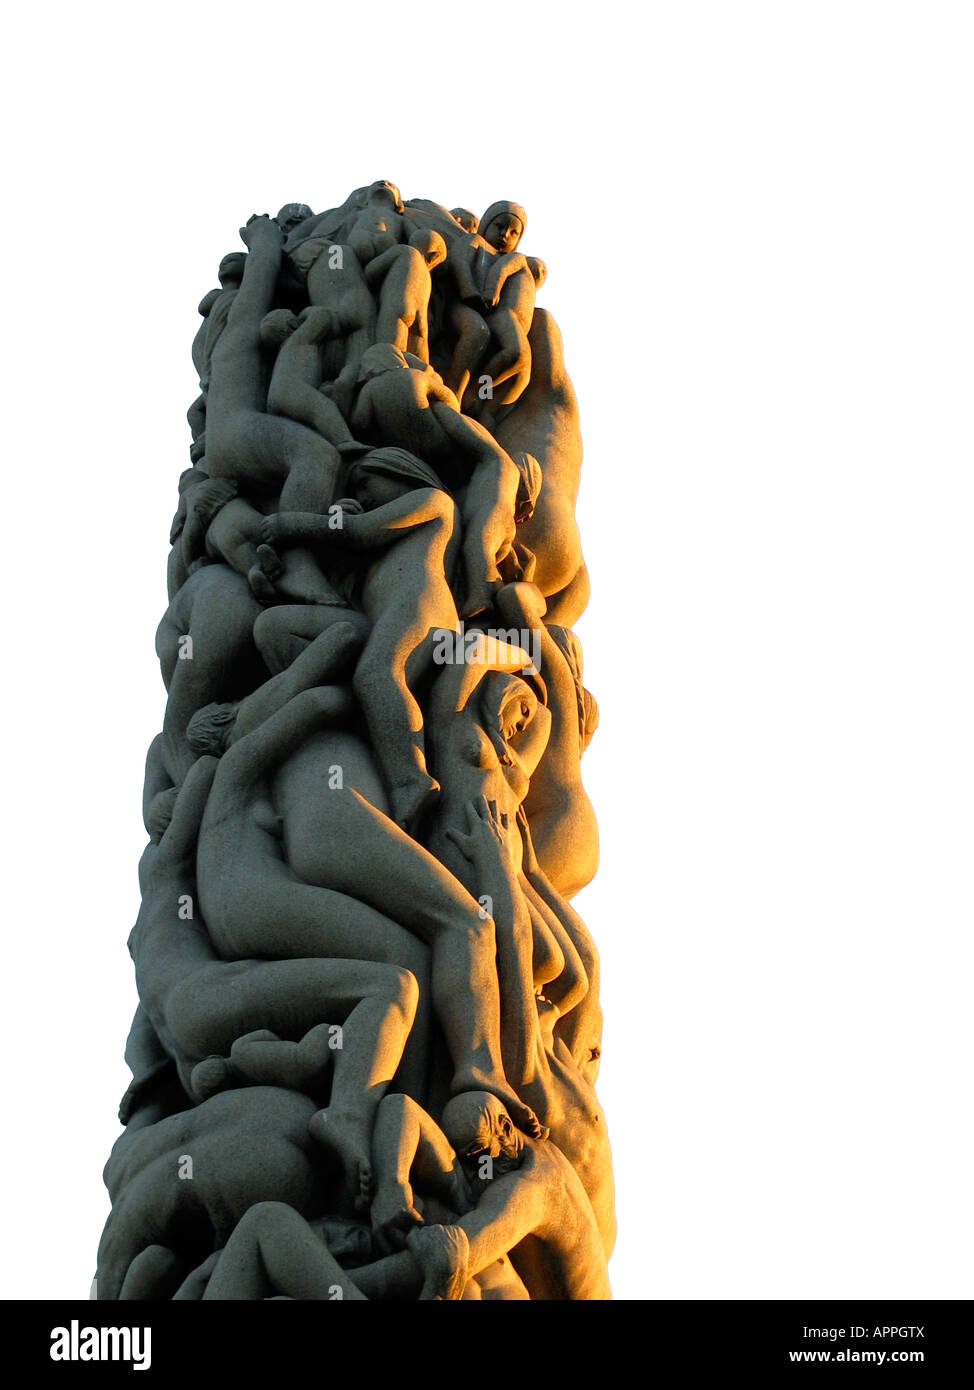 Top of the Monolith in Vigeland Sculpture Park, Frogner Park, Oslo, Norway Stock Photo